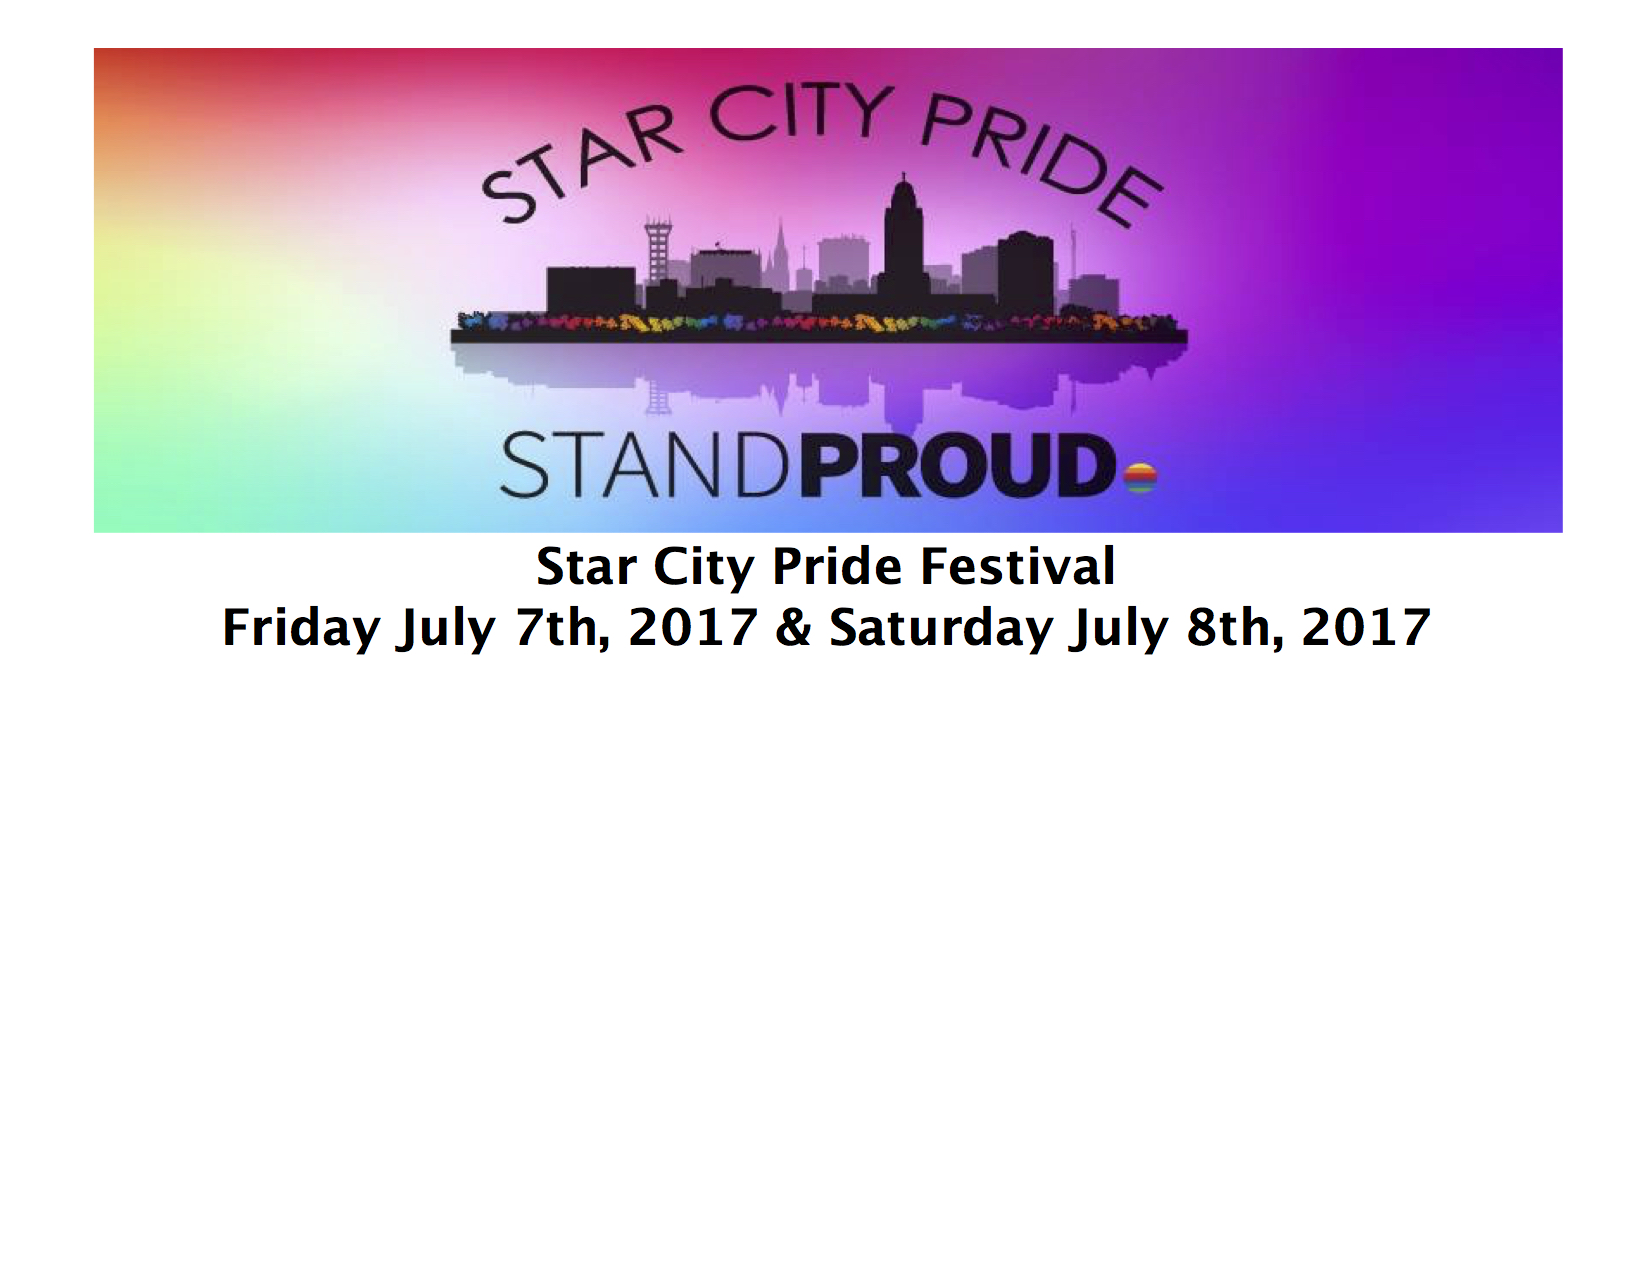 Star City Pride Festival